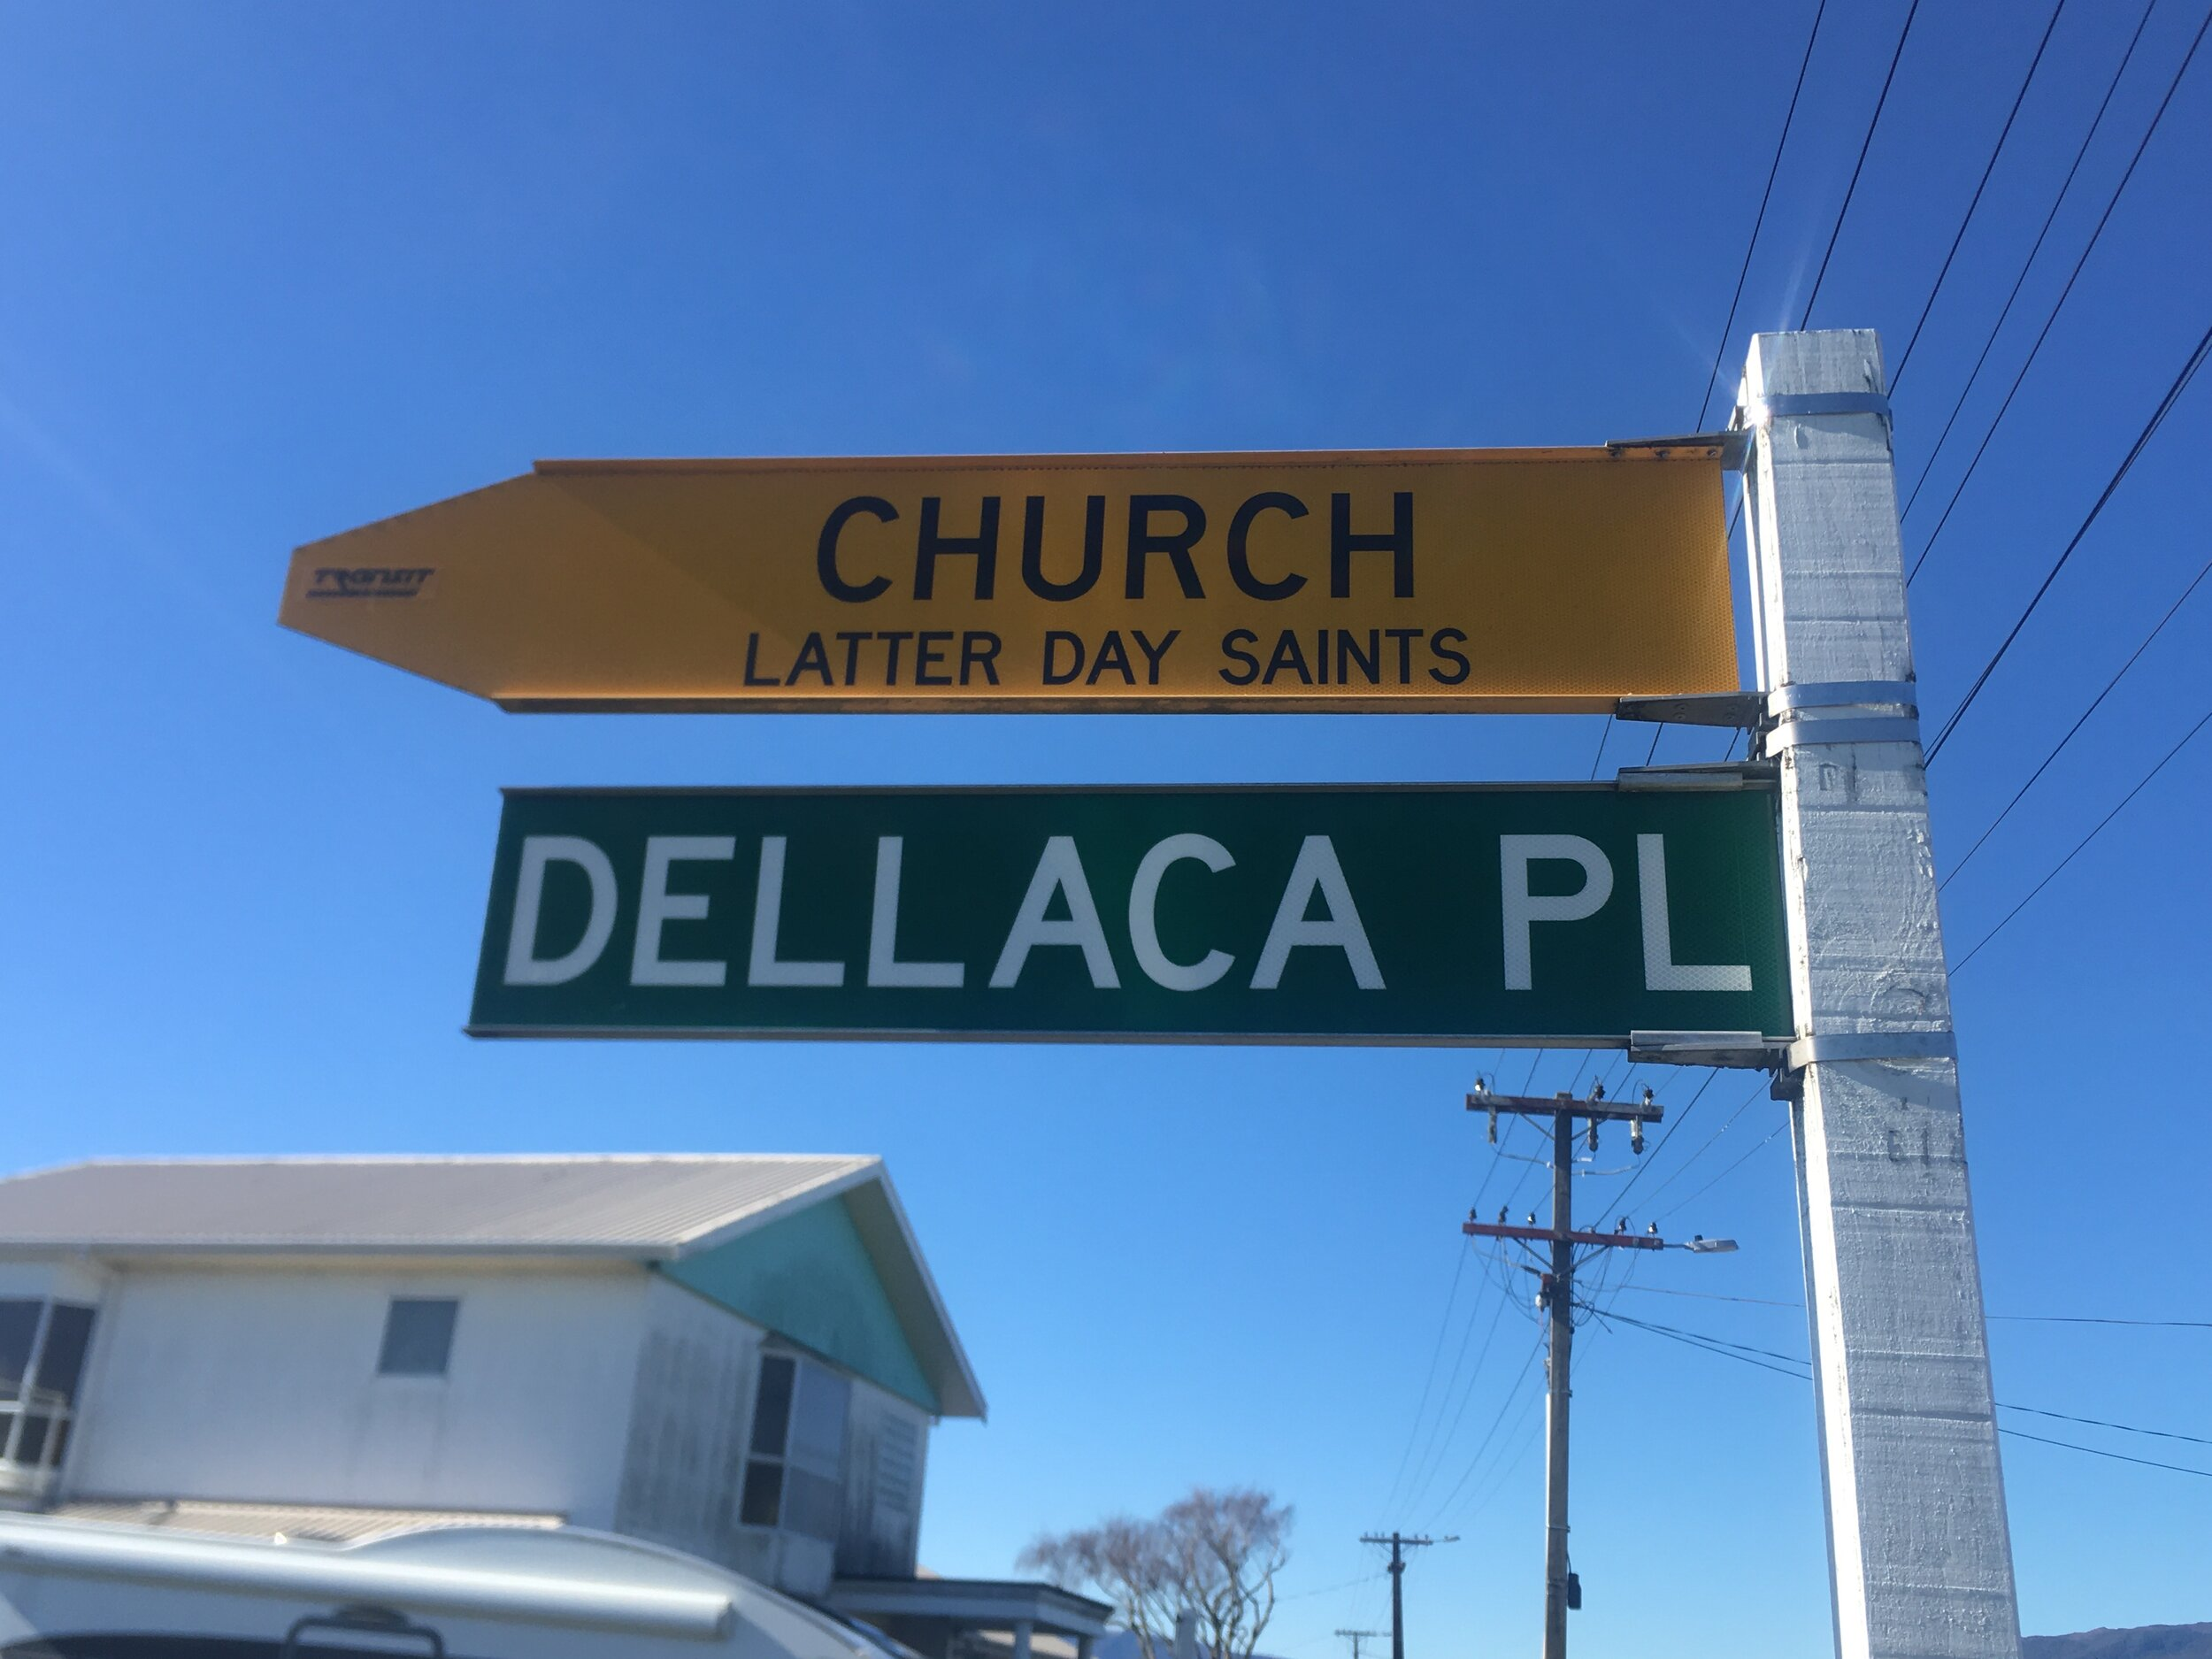 I love that all churches get a street sign in NZ